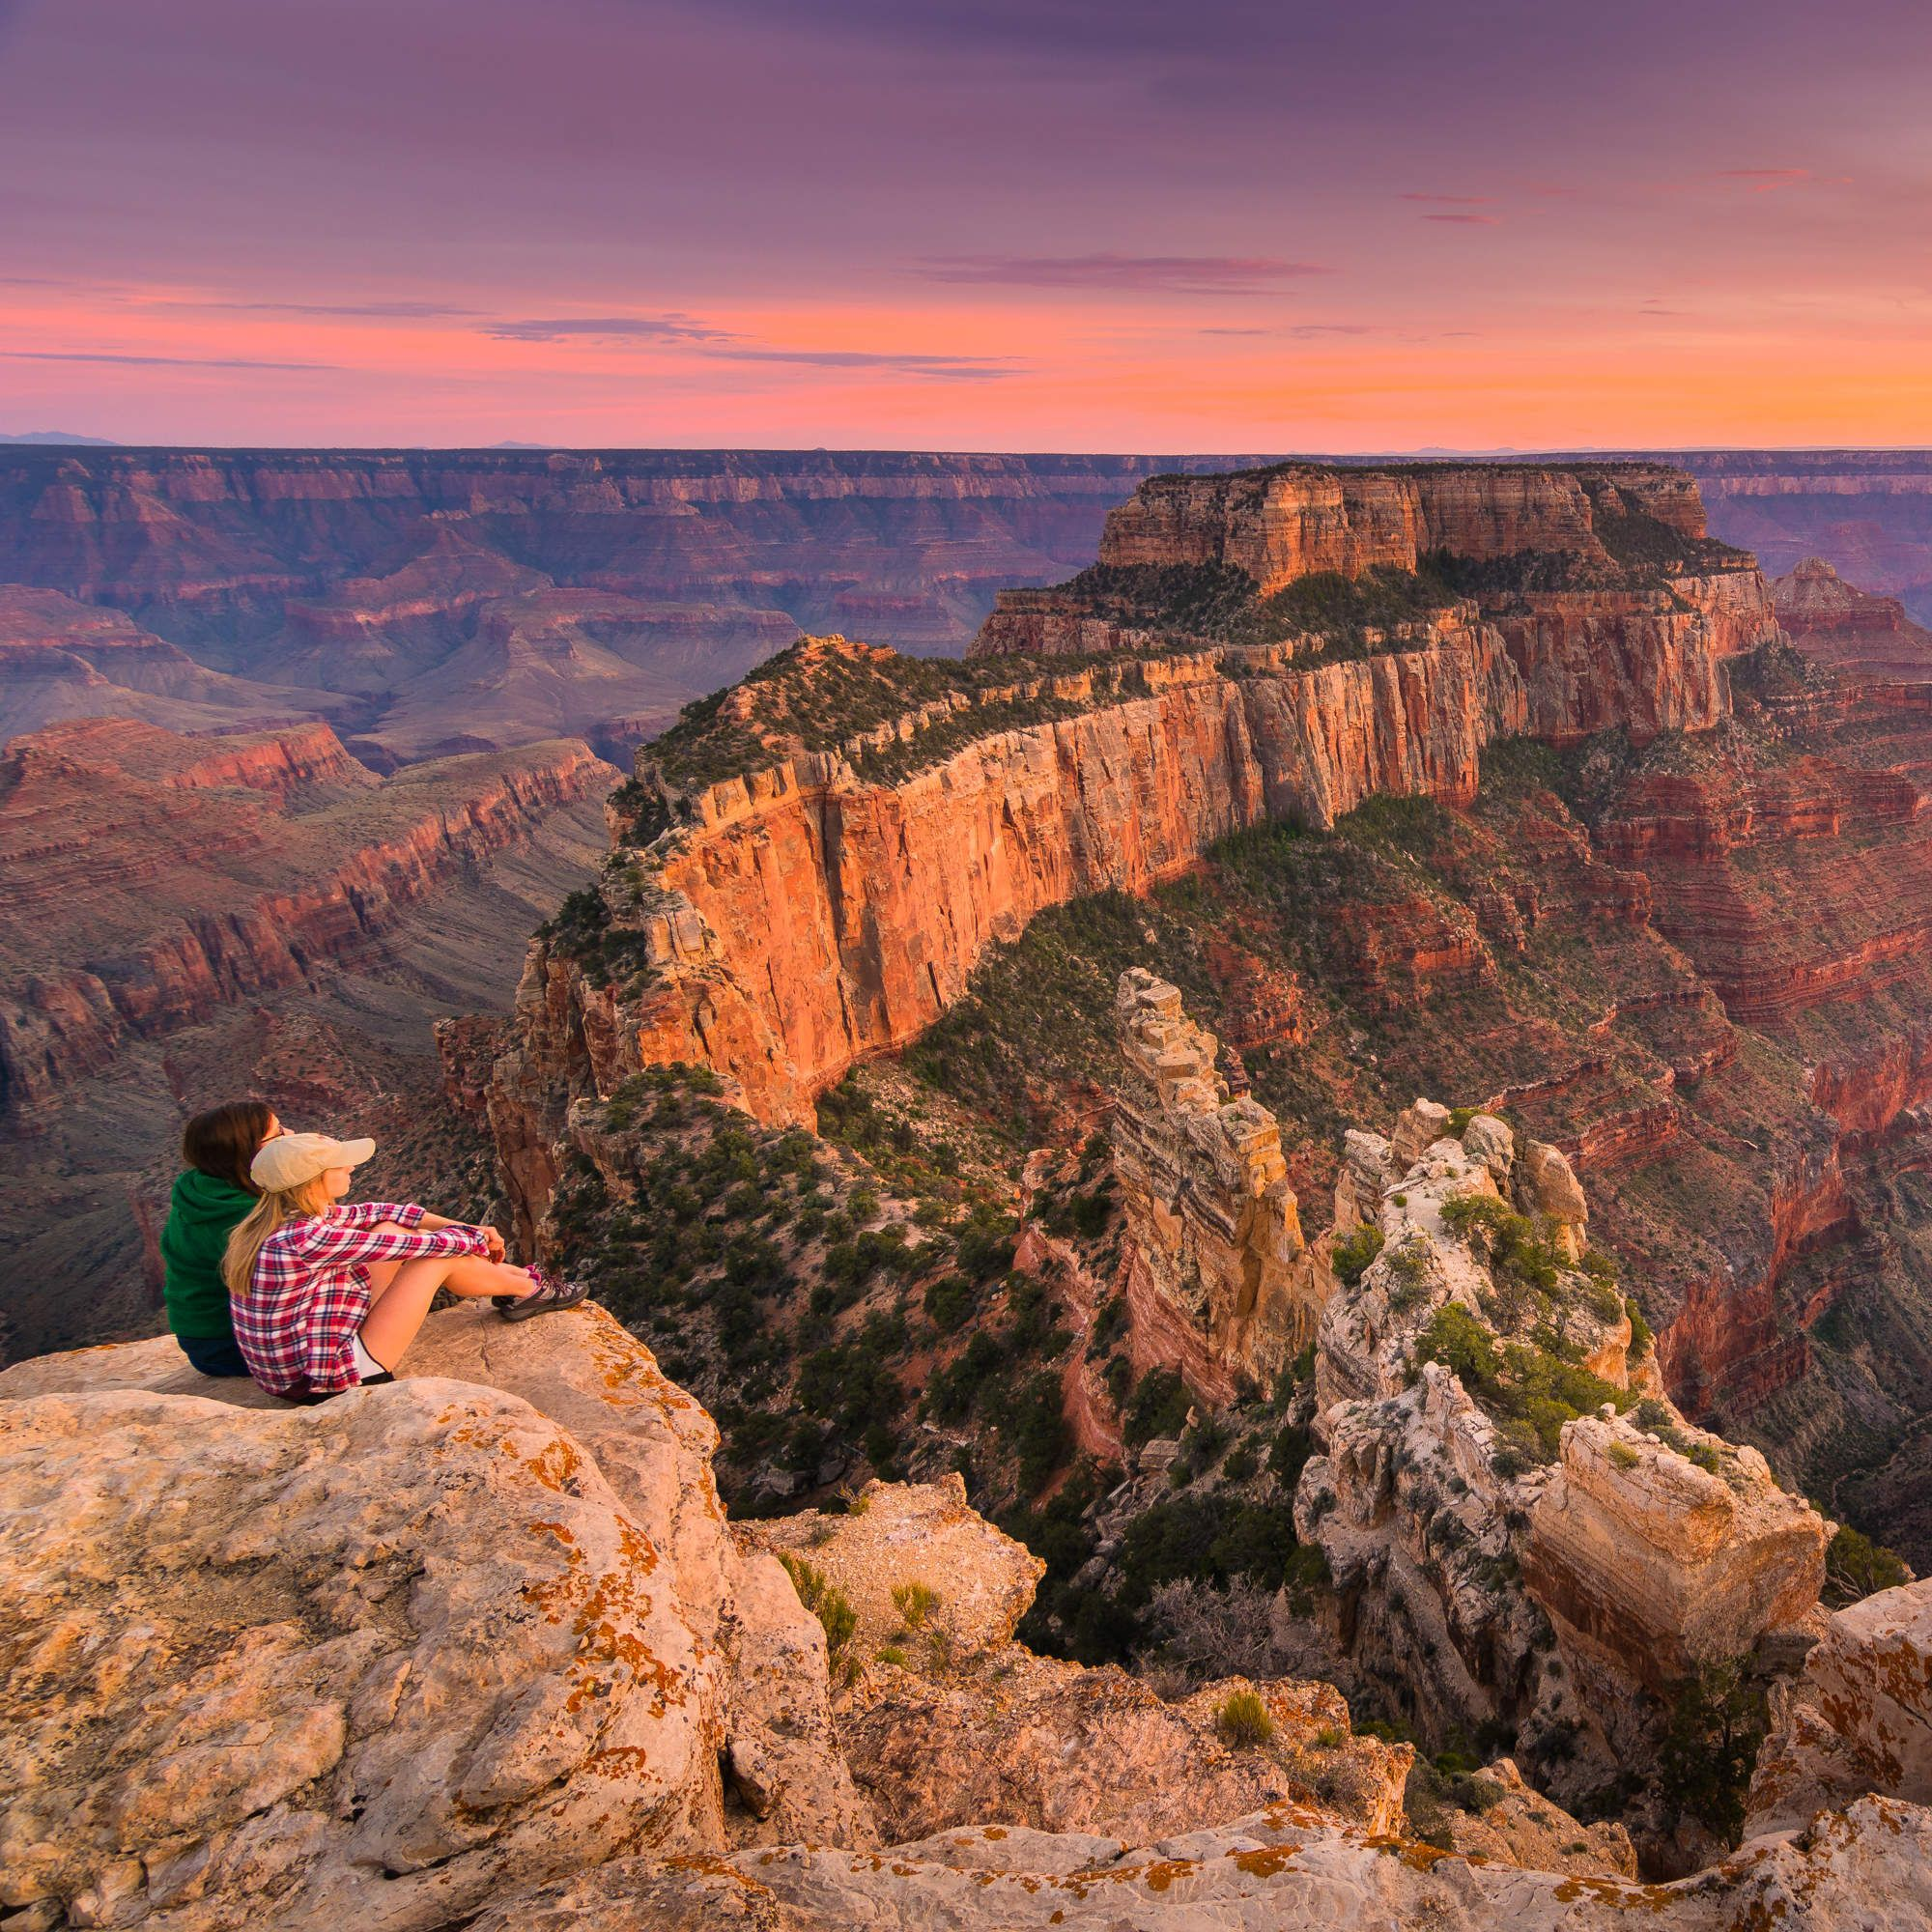 The Great American Bucket List: 50 Things to Do in the US Before You Die